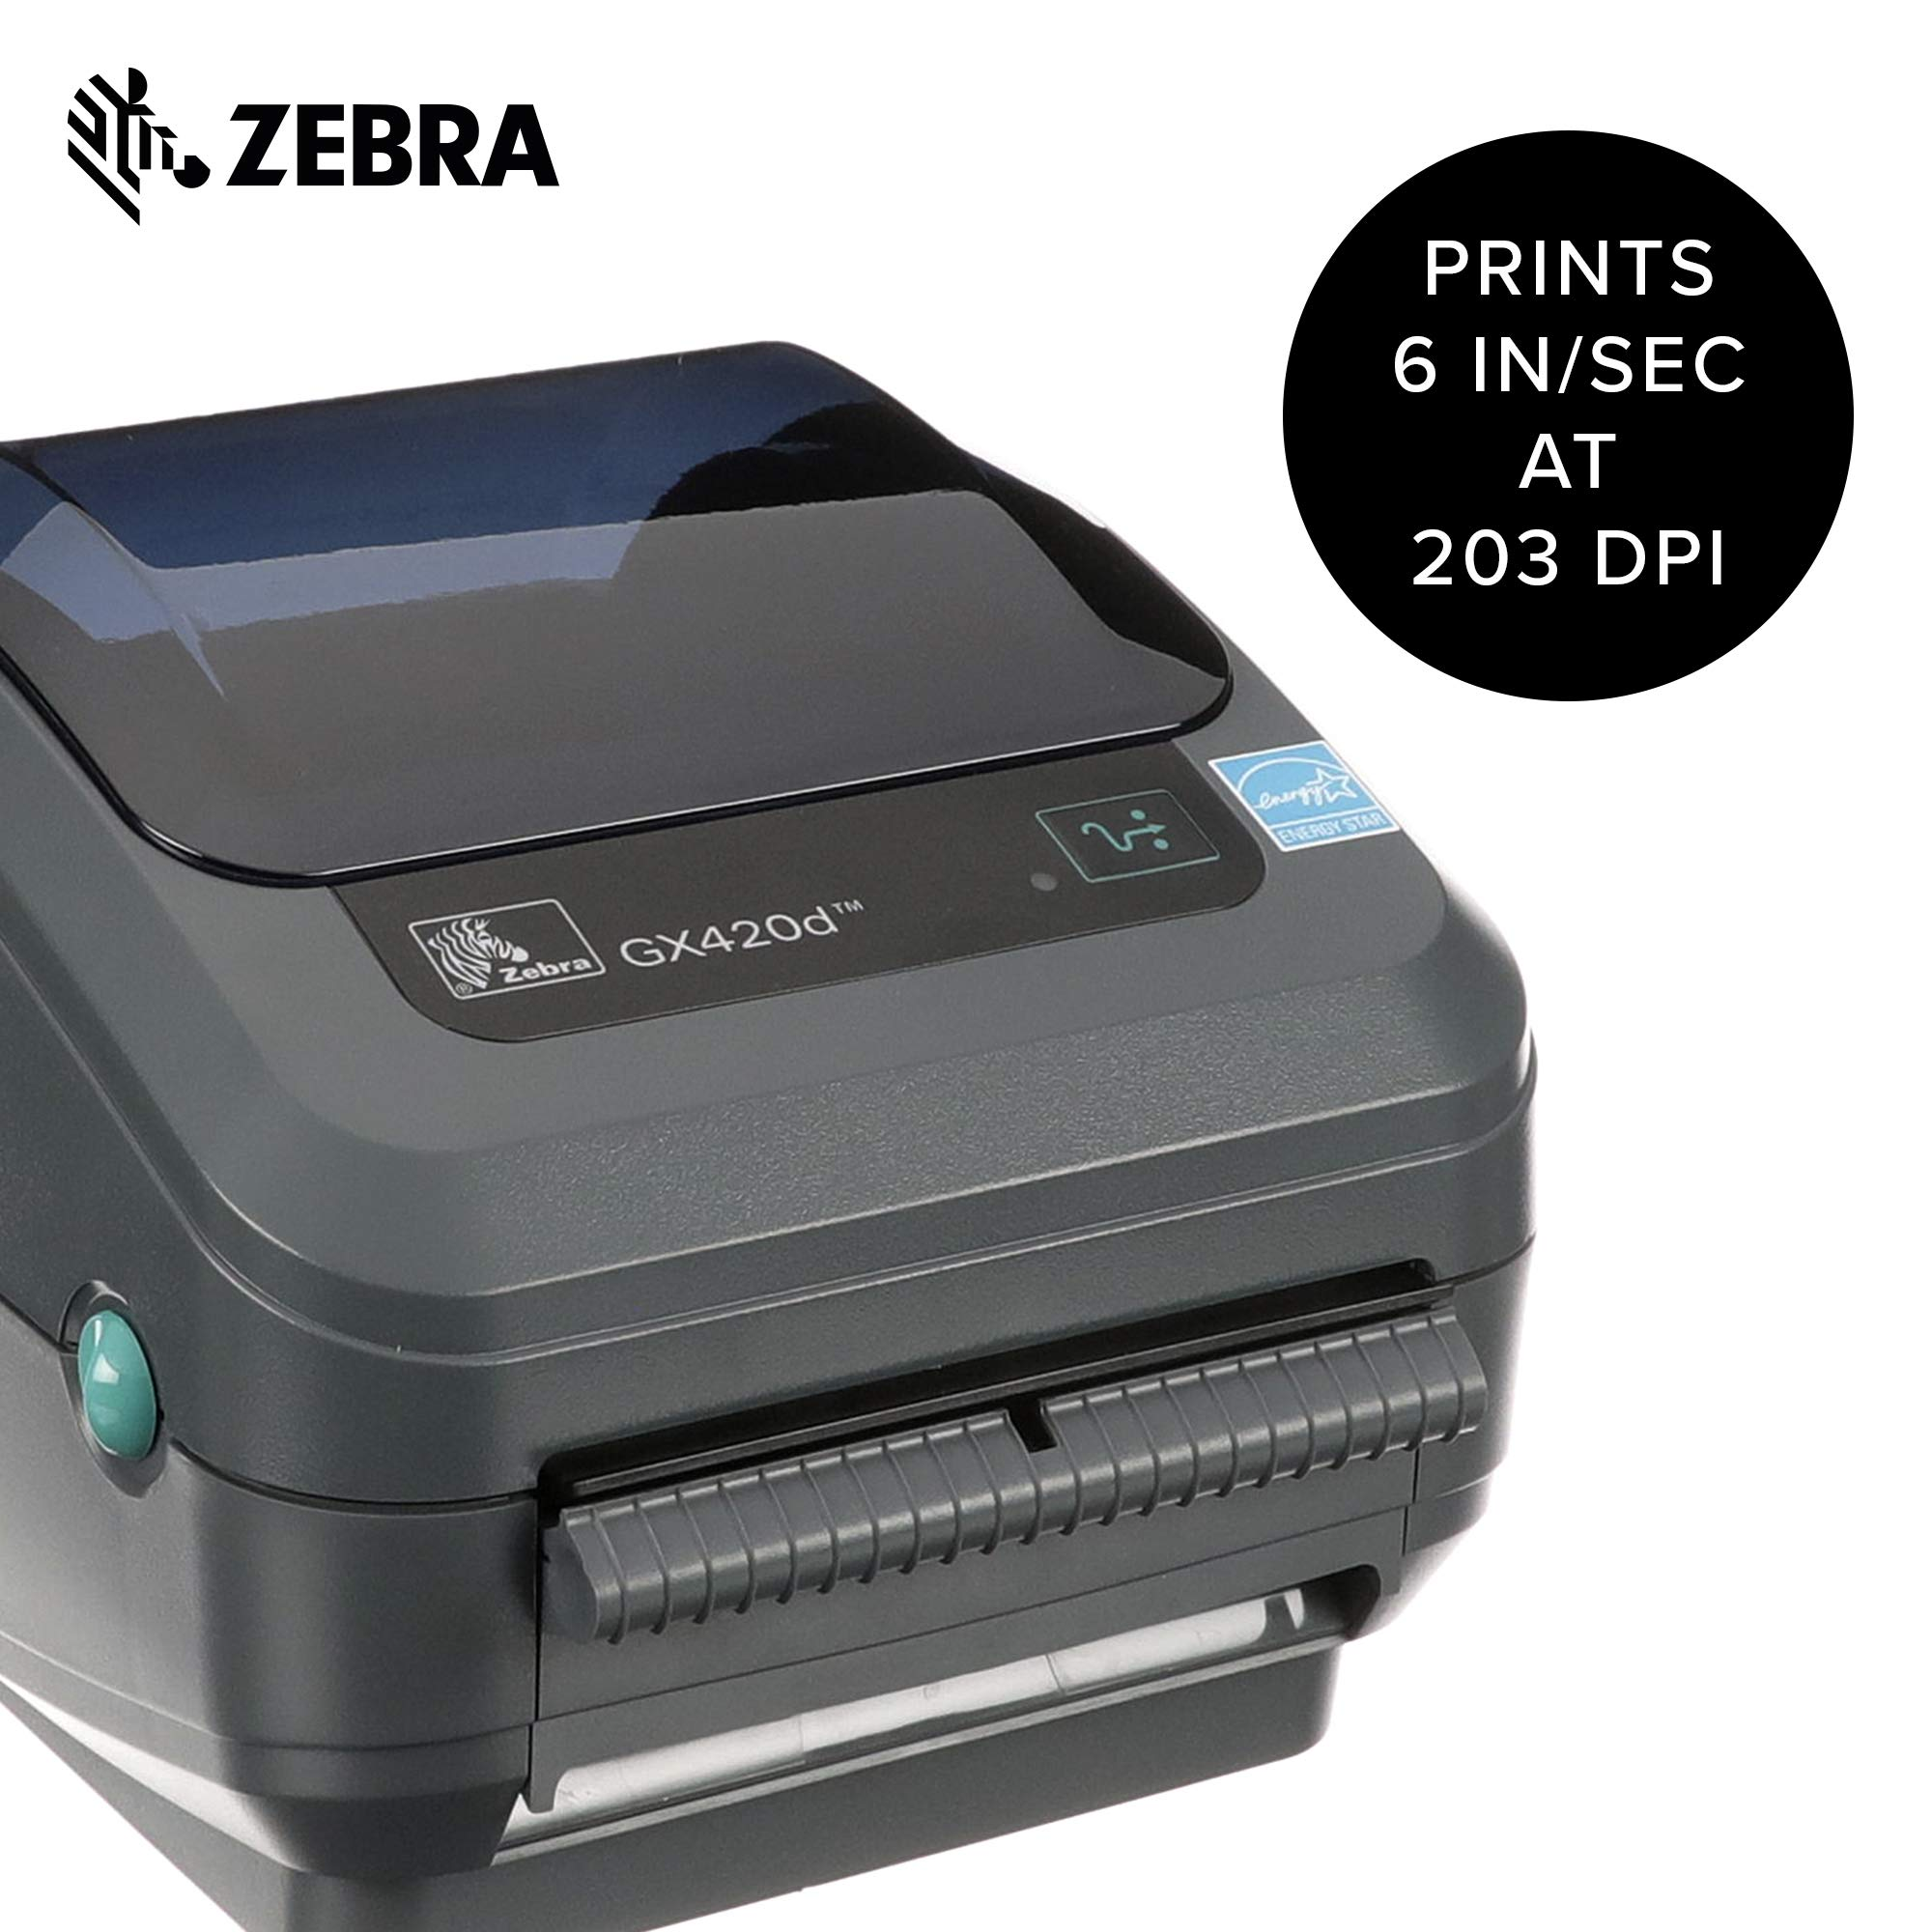 Zebra - GX420d Direct Thermal Desktop Printer for Labels, Receipts, Barcodes, Tags, and Wrist Bands - Print Width of 4 in - USB, Serial, and Ethernet Port Connectivity (Includes Peeler) by ZEBRA (Image #2)